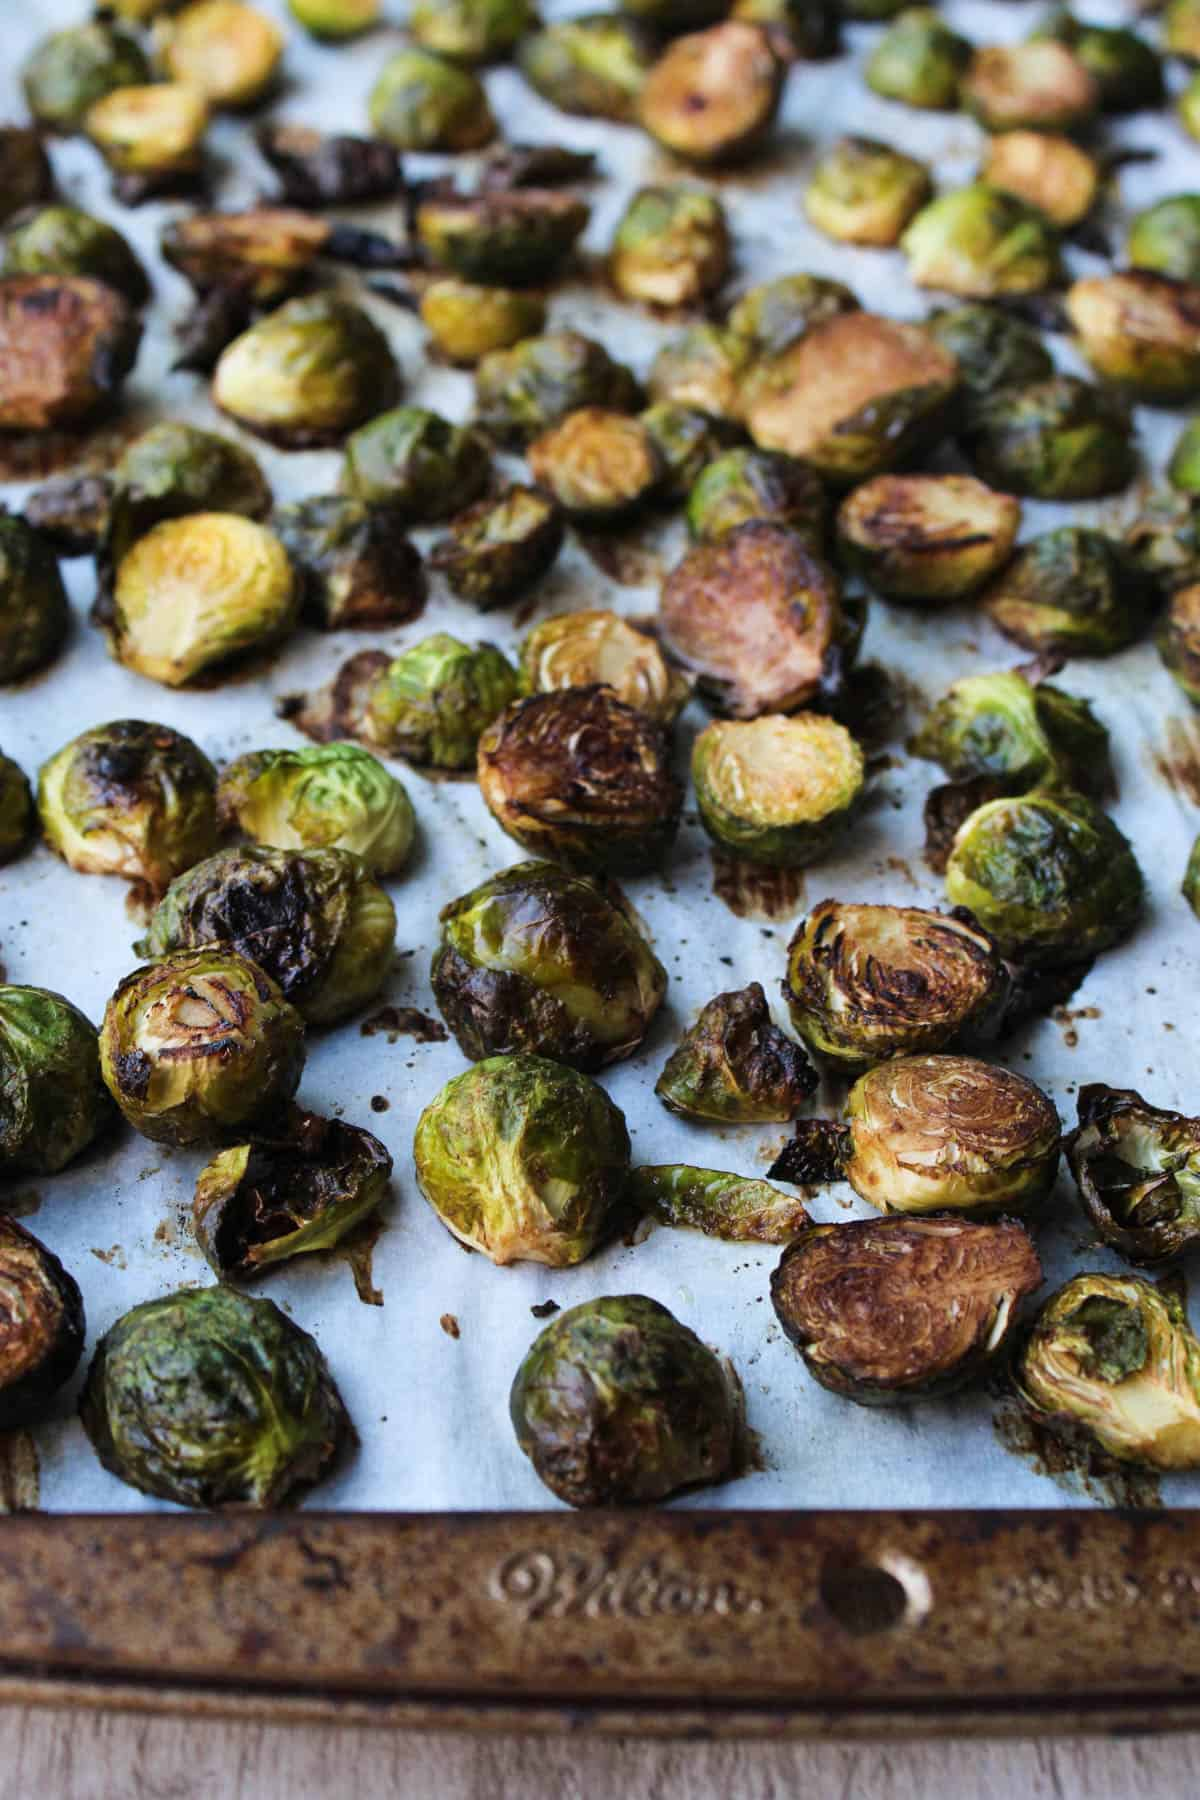 These Ginger & Balsamic Roasted Brussels Sprouts with Pomegranates are an easy & healthy side dish that are just as festive as the holiday season - Eat the Gains